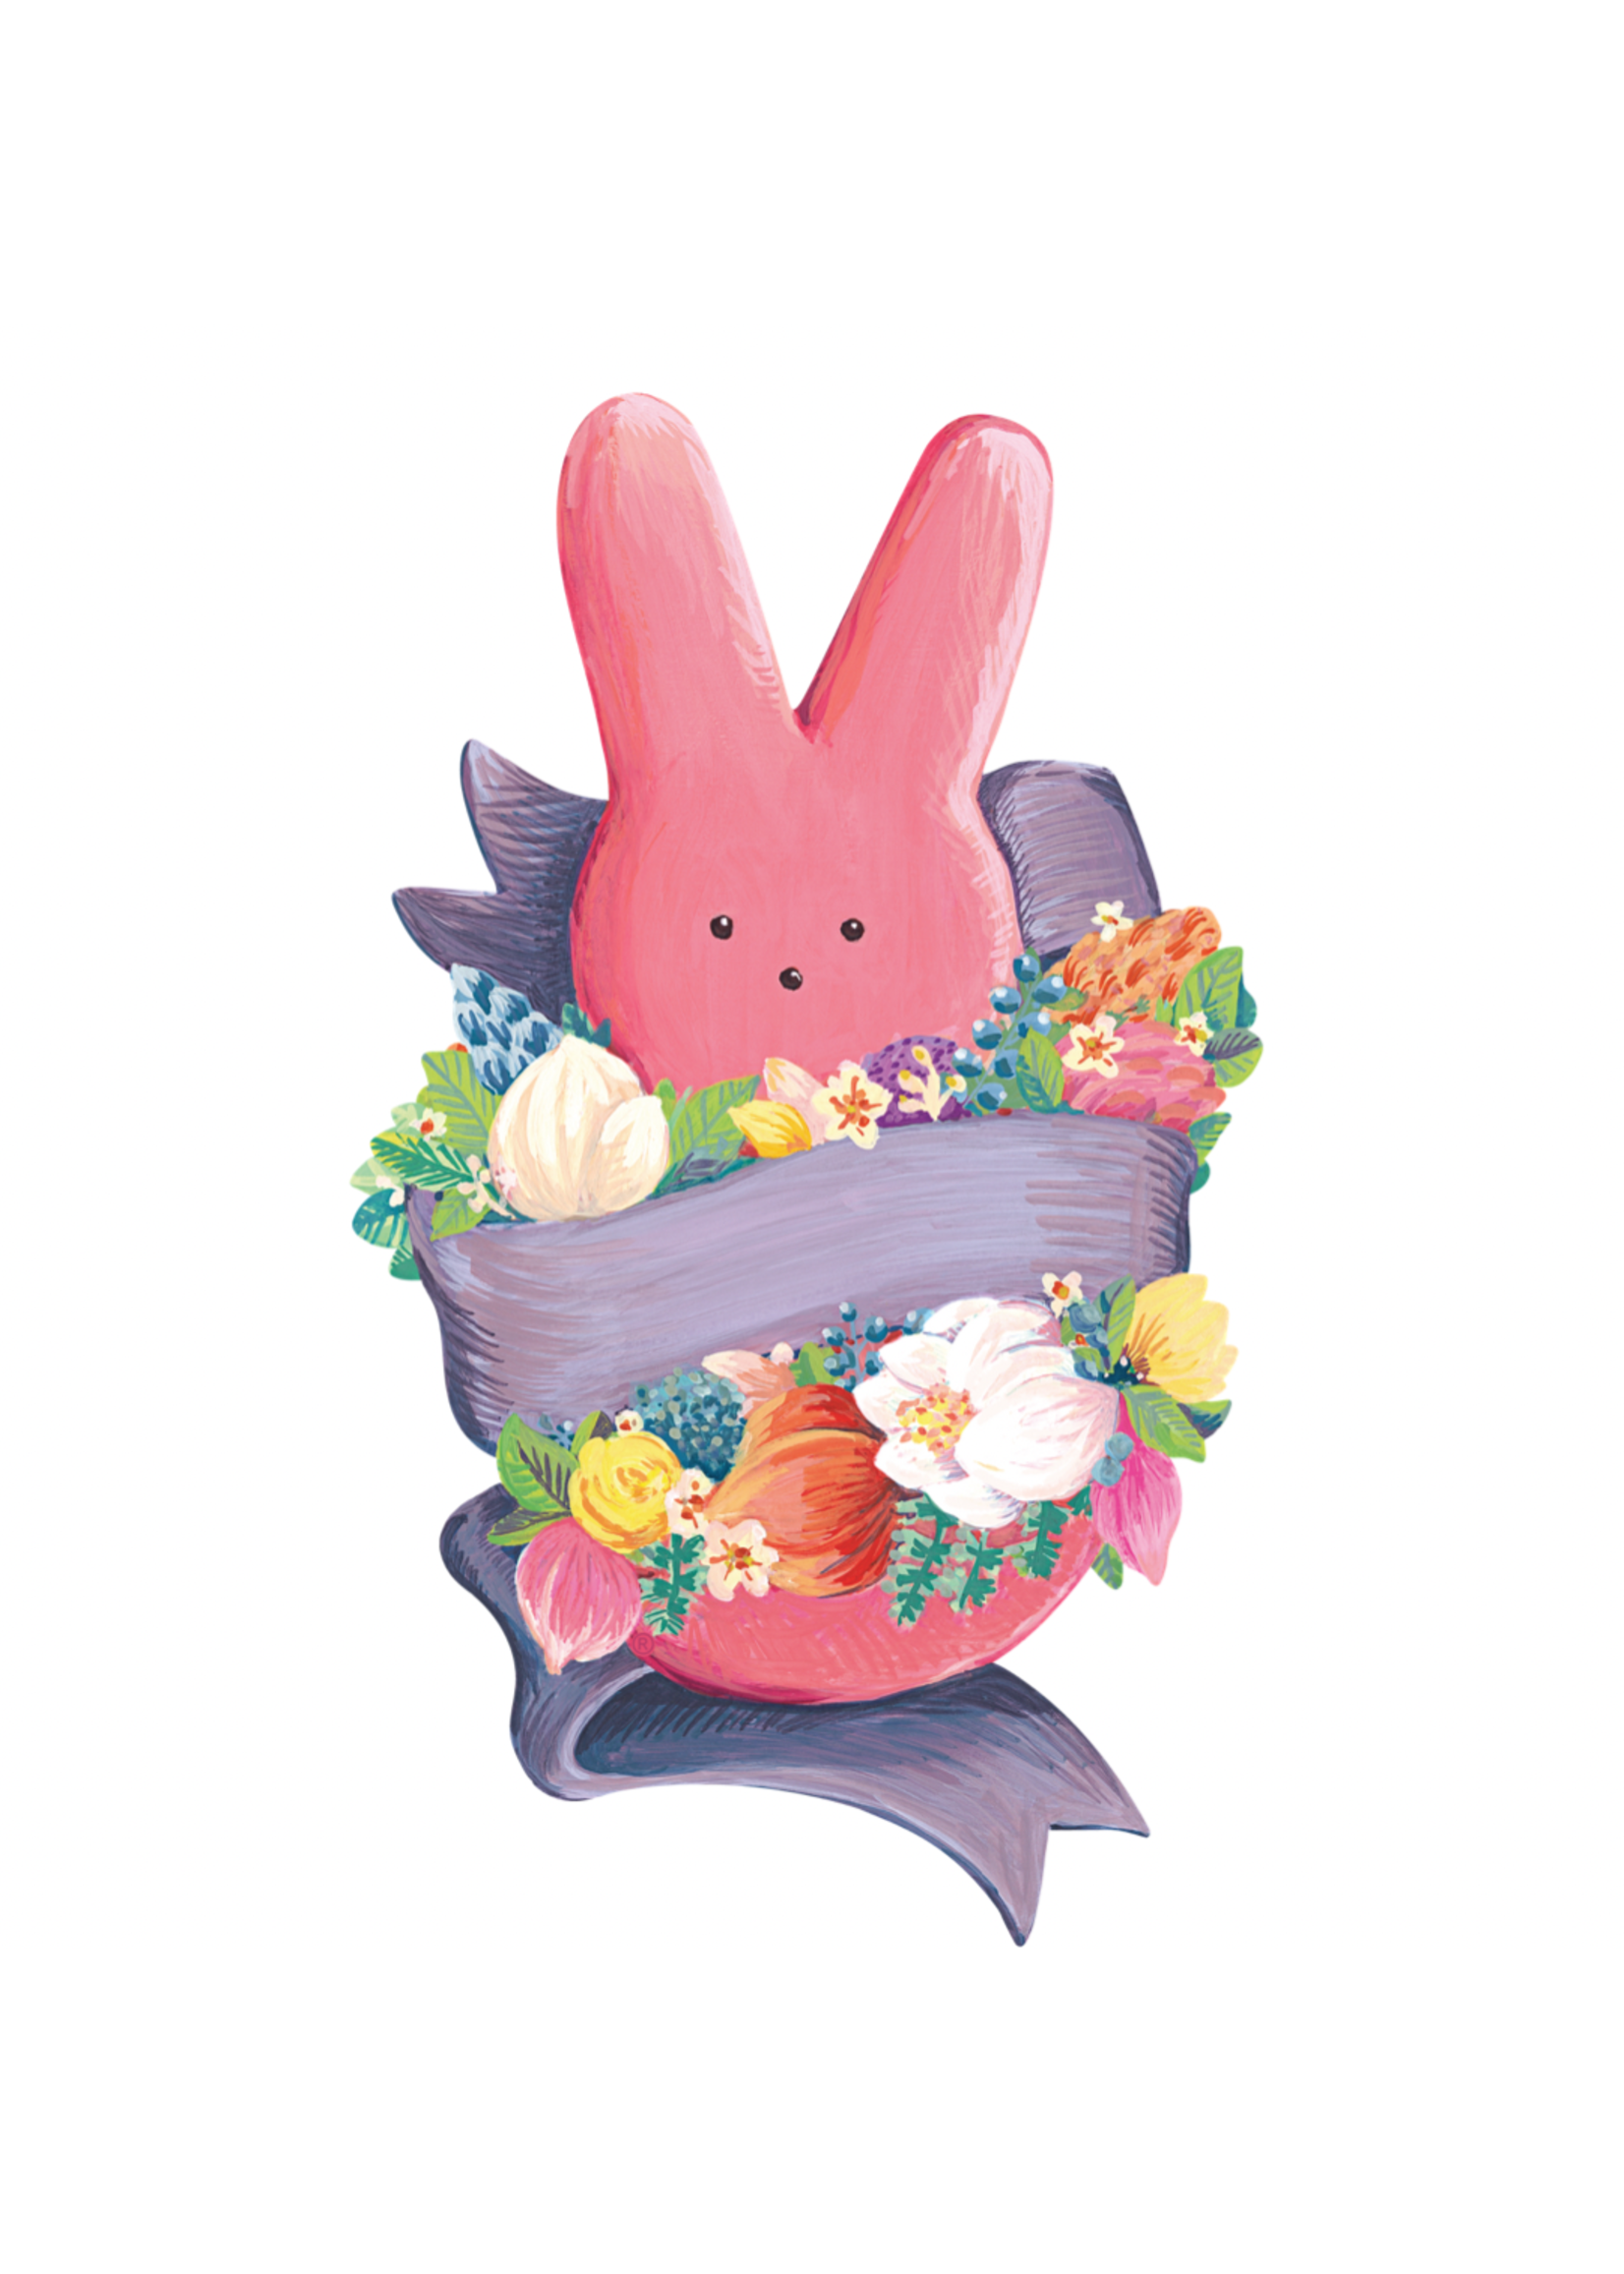 Hester & Cook Table Accents - PEEPS Bunny (pack of 12)